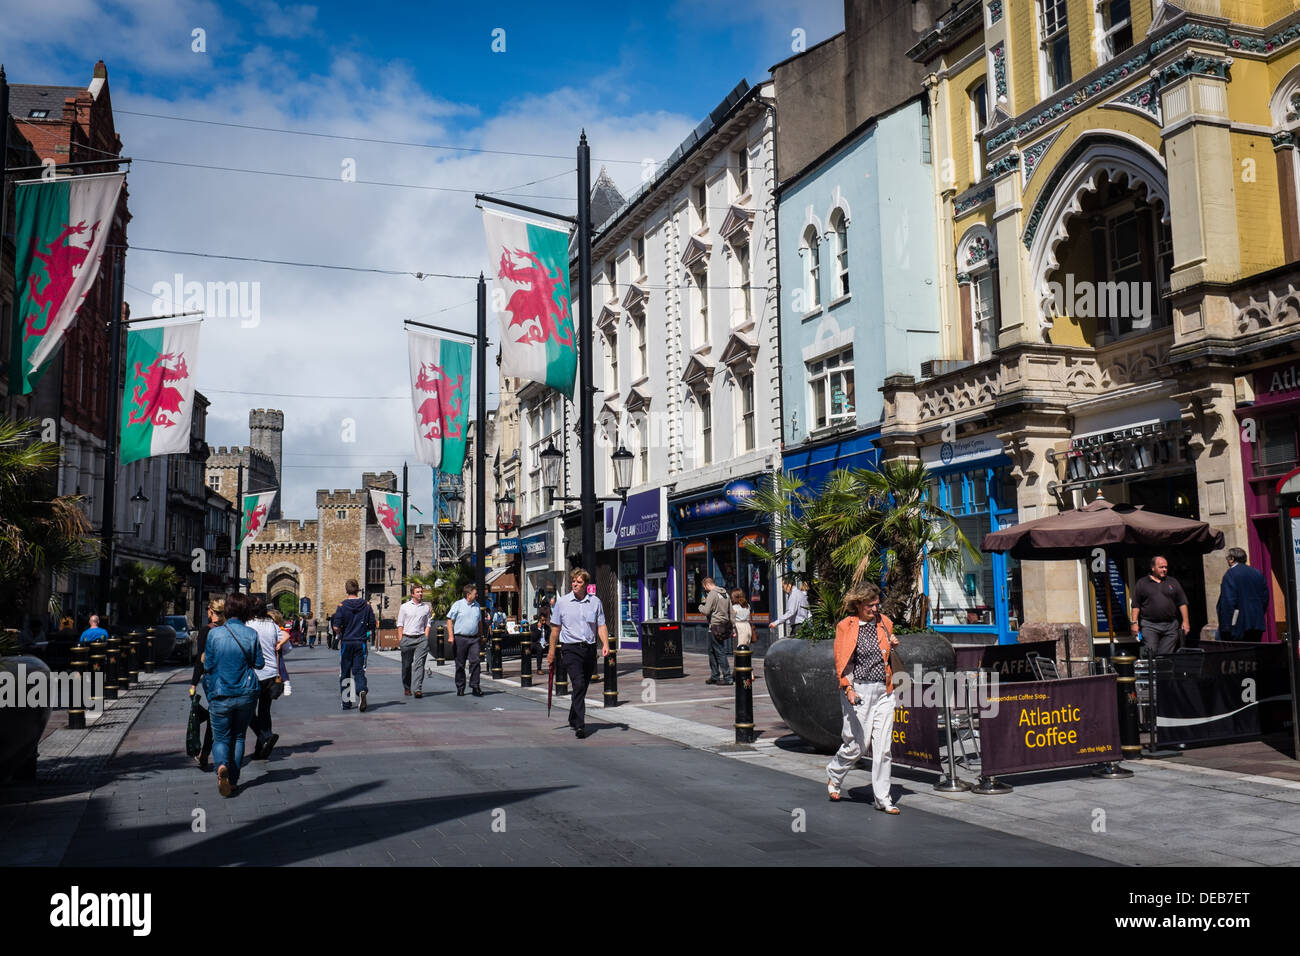 Pedestrianised St Mary's Street, looking towards the Castle, Cardiff city centre, August 2013, Wales UK - Stock Image